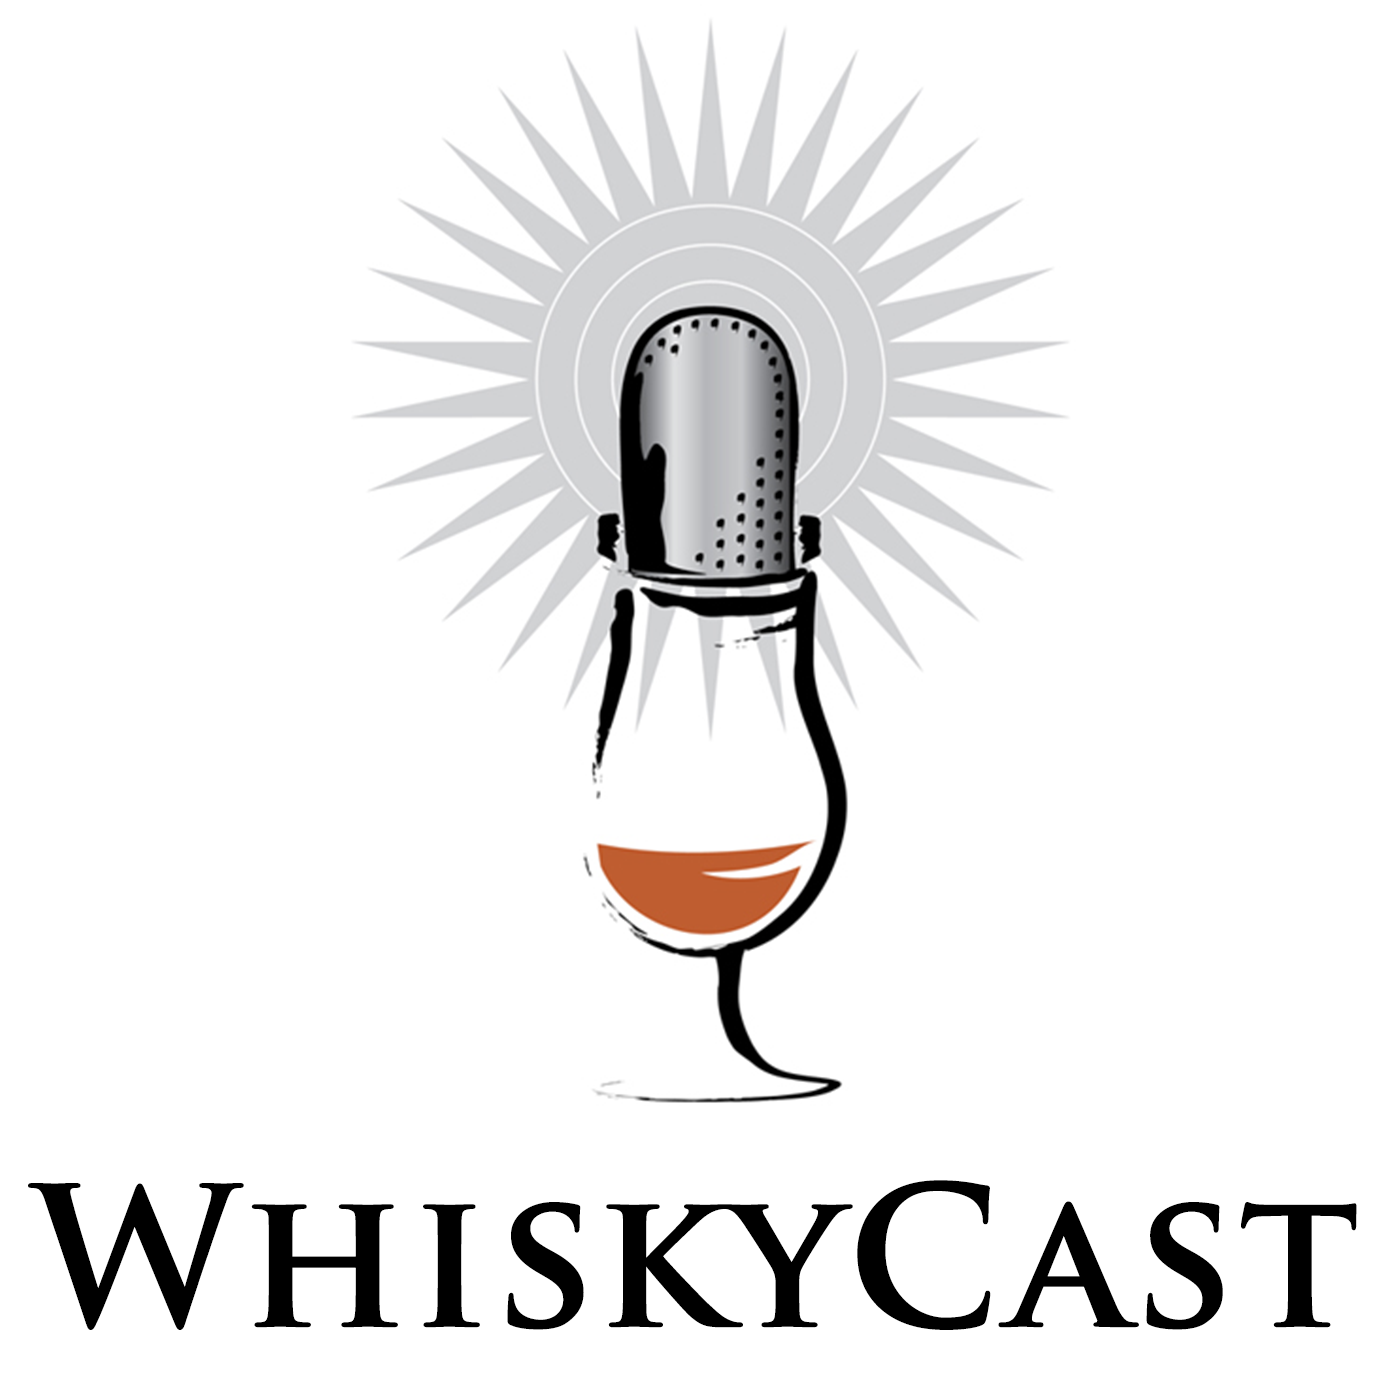 WhiskyCast Episode 422: April 28, 2013